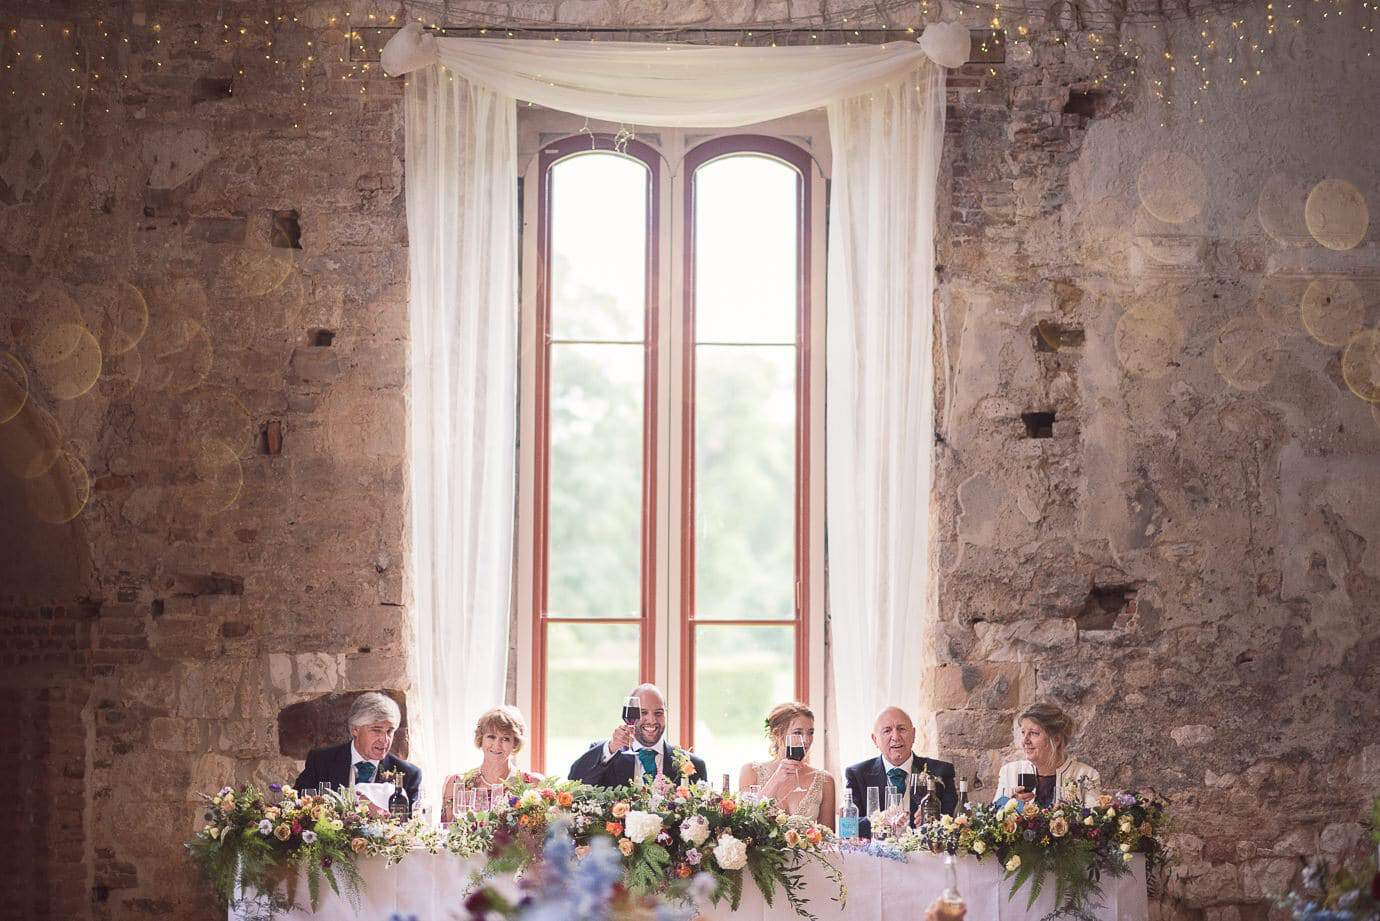 Lulworth Castle Wedding Top Table during wedding breakfast photographs